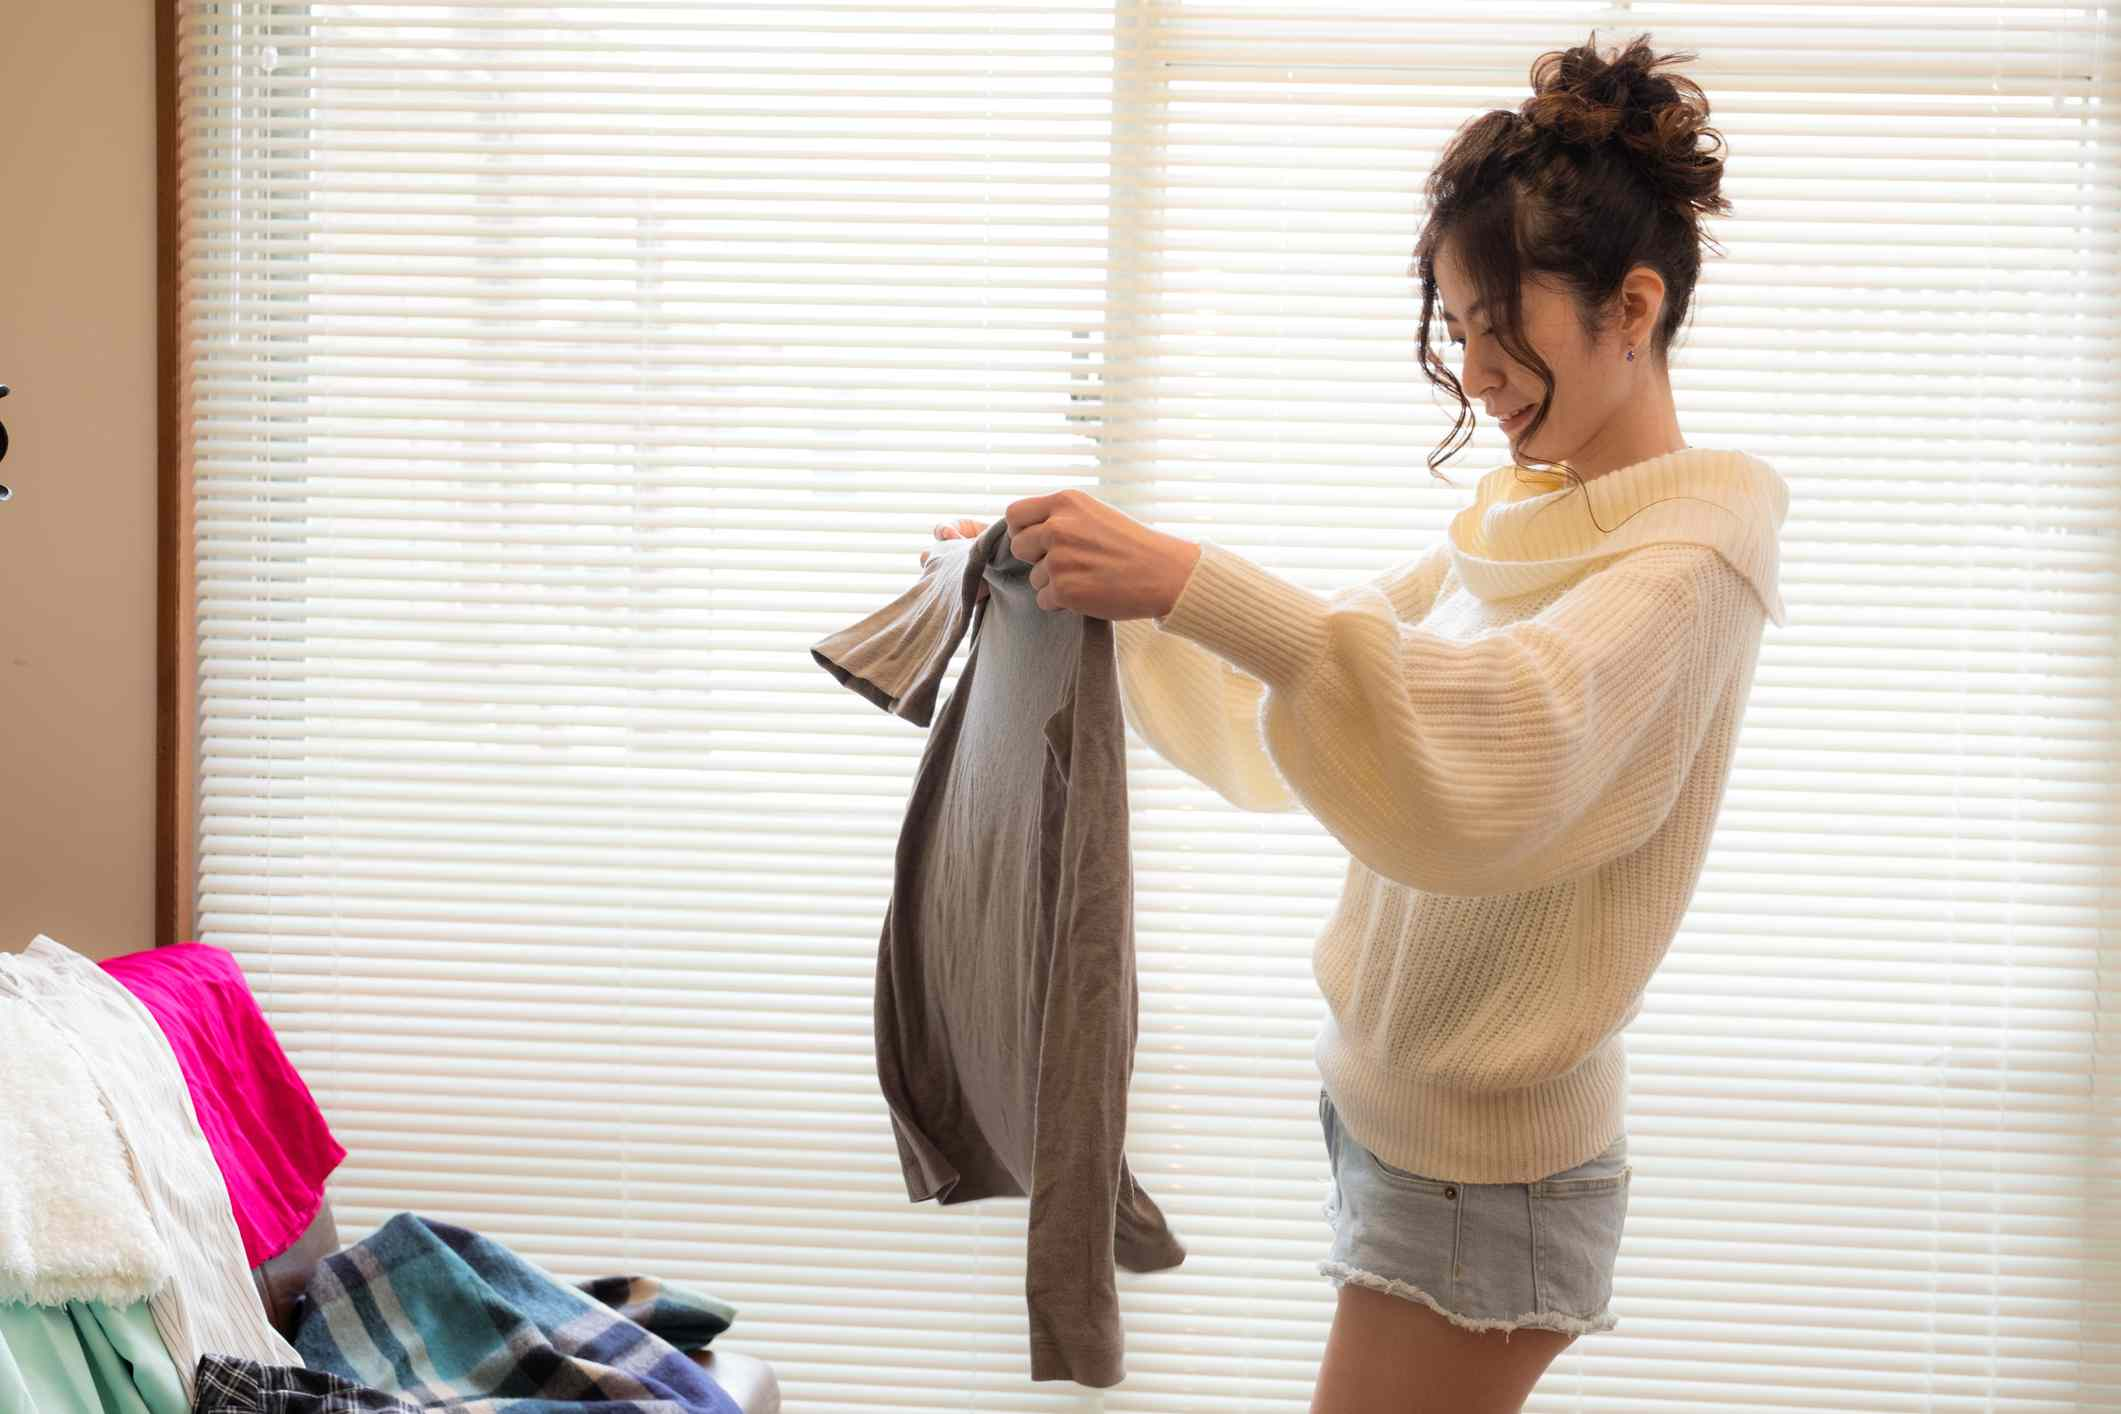 Woman holds up long sleeved shirt above pile of clothes